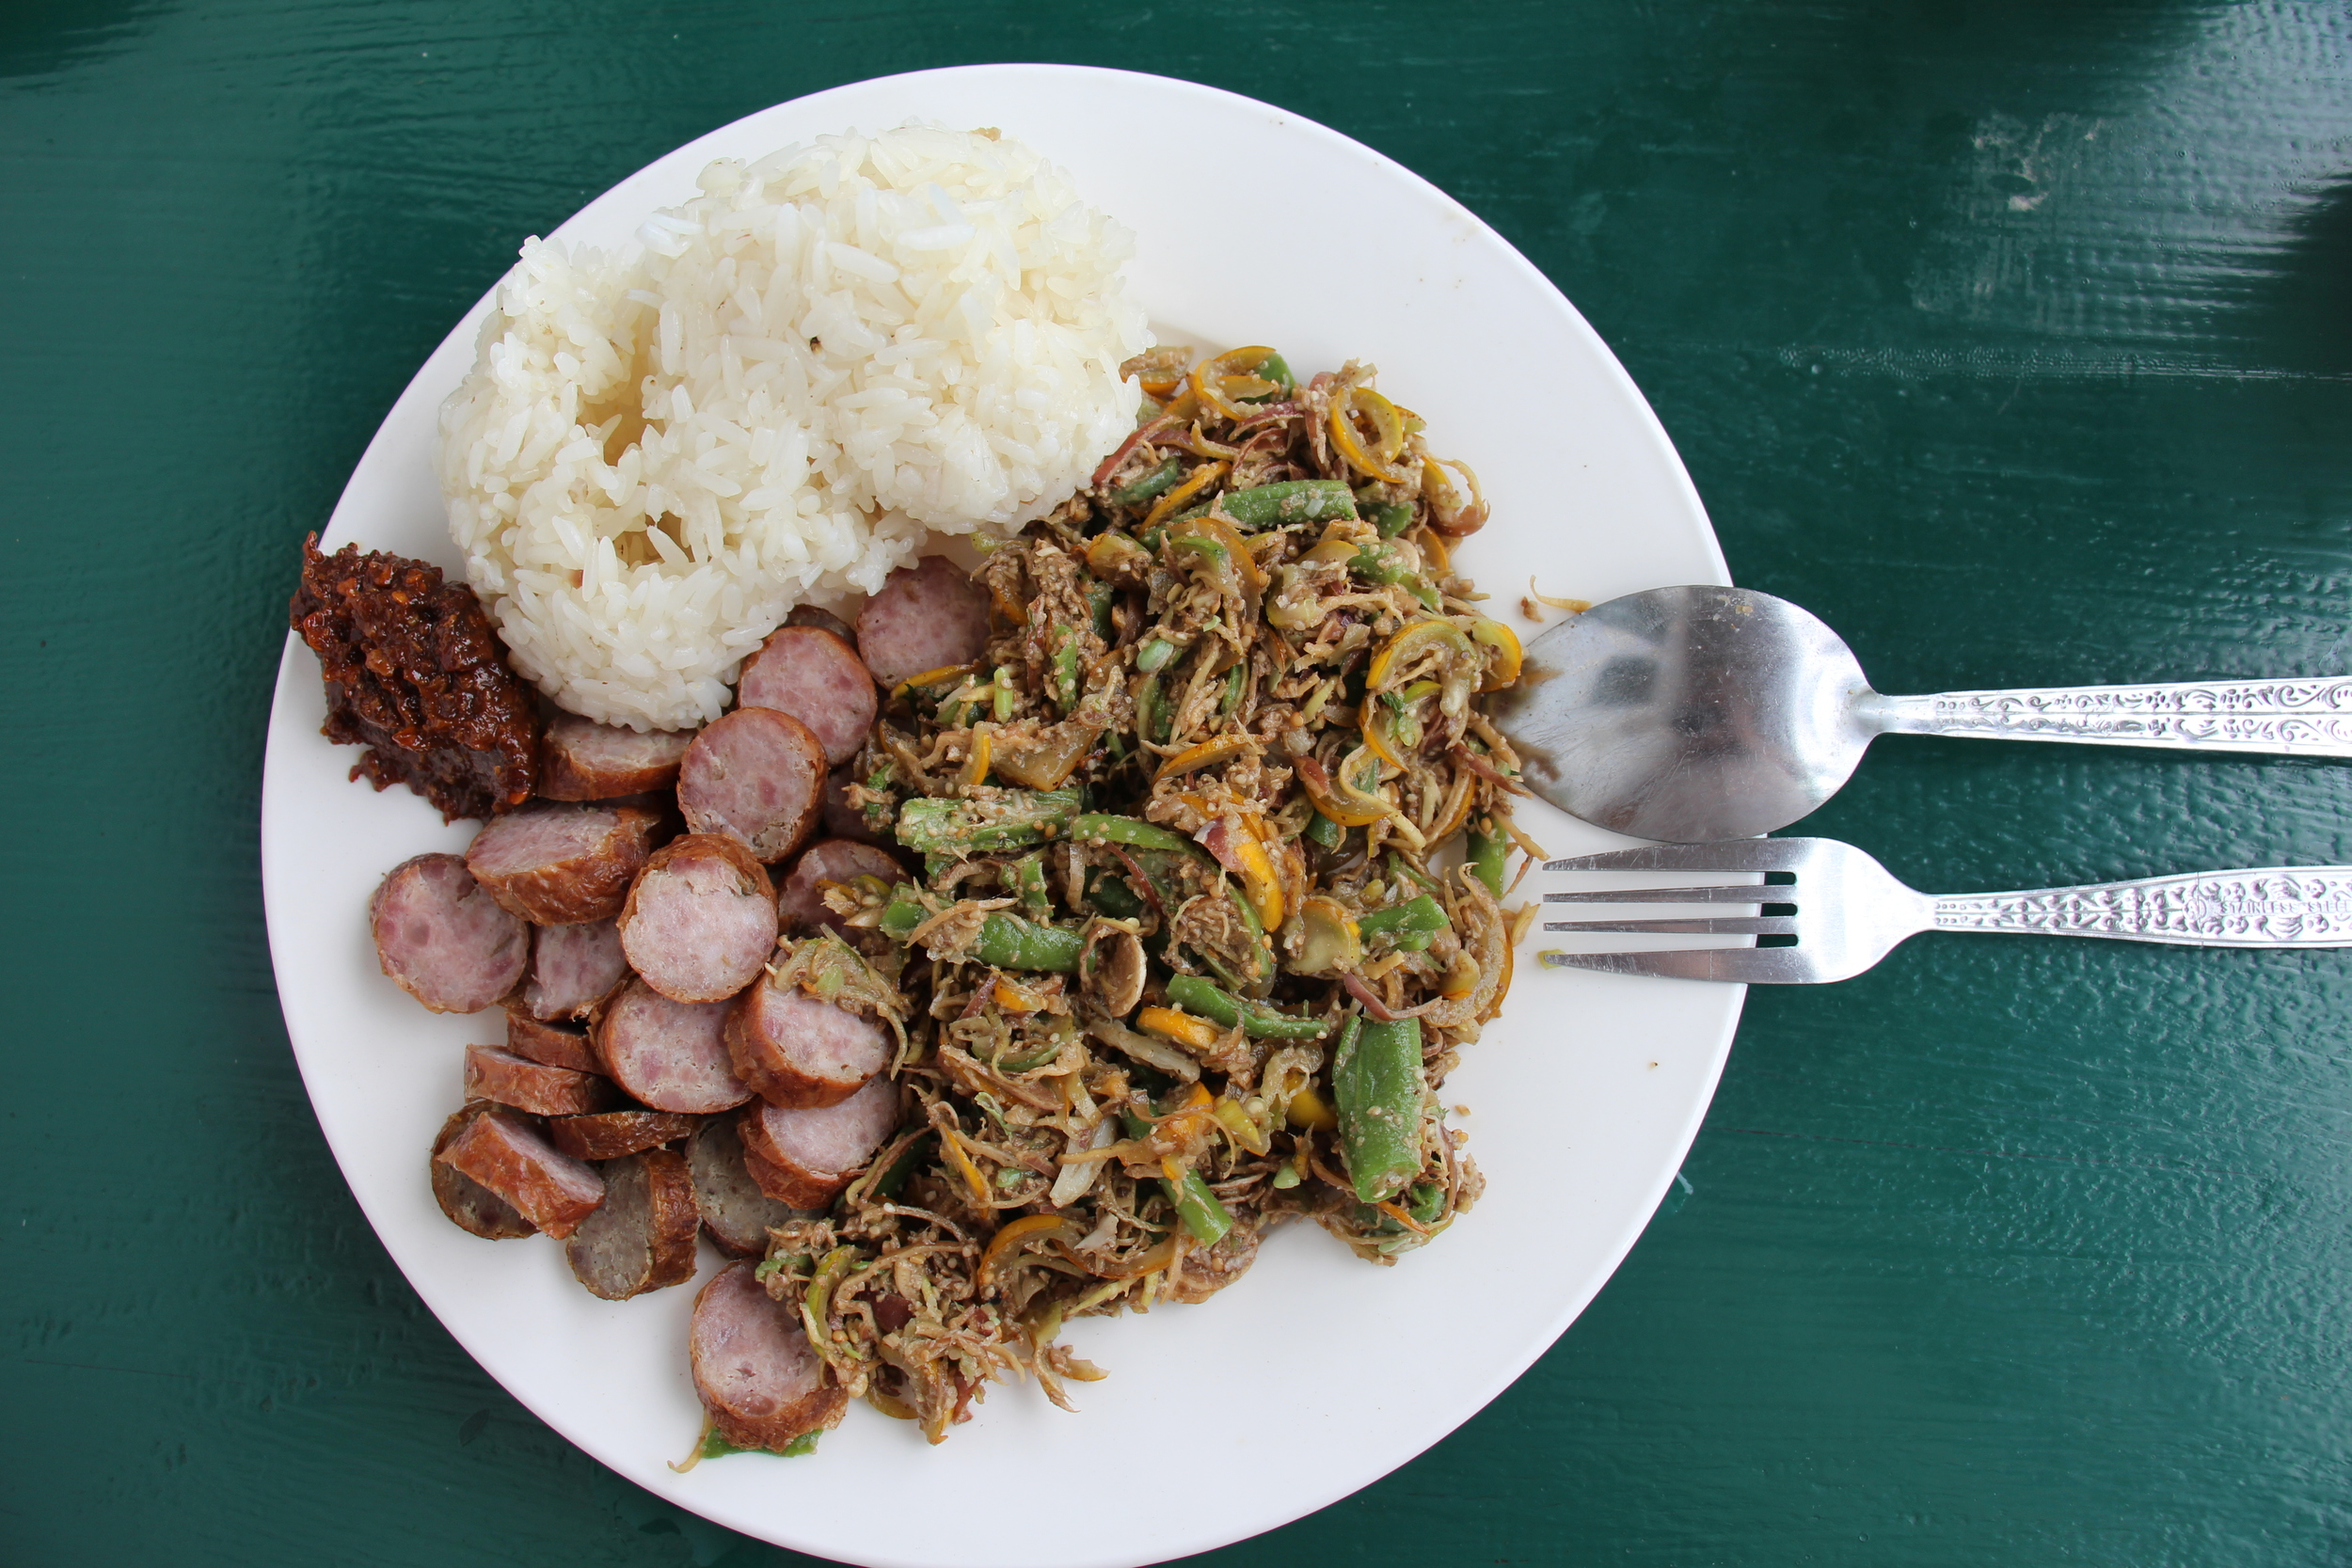 Lunch from the market: sausage, sticky rice, eggplant & long bean saladand jeow